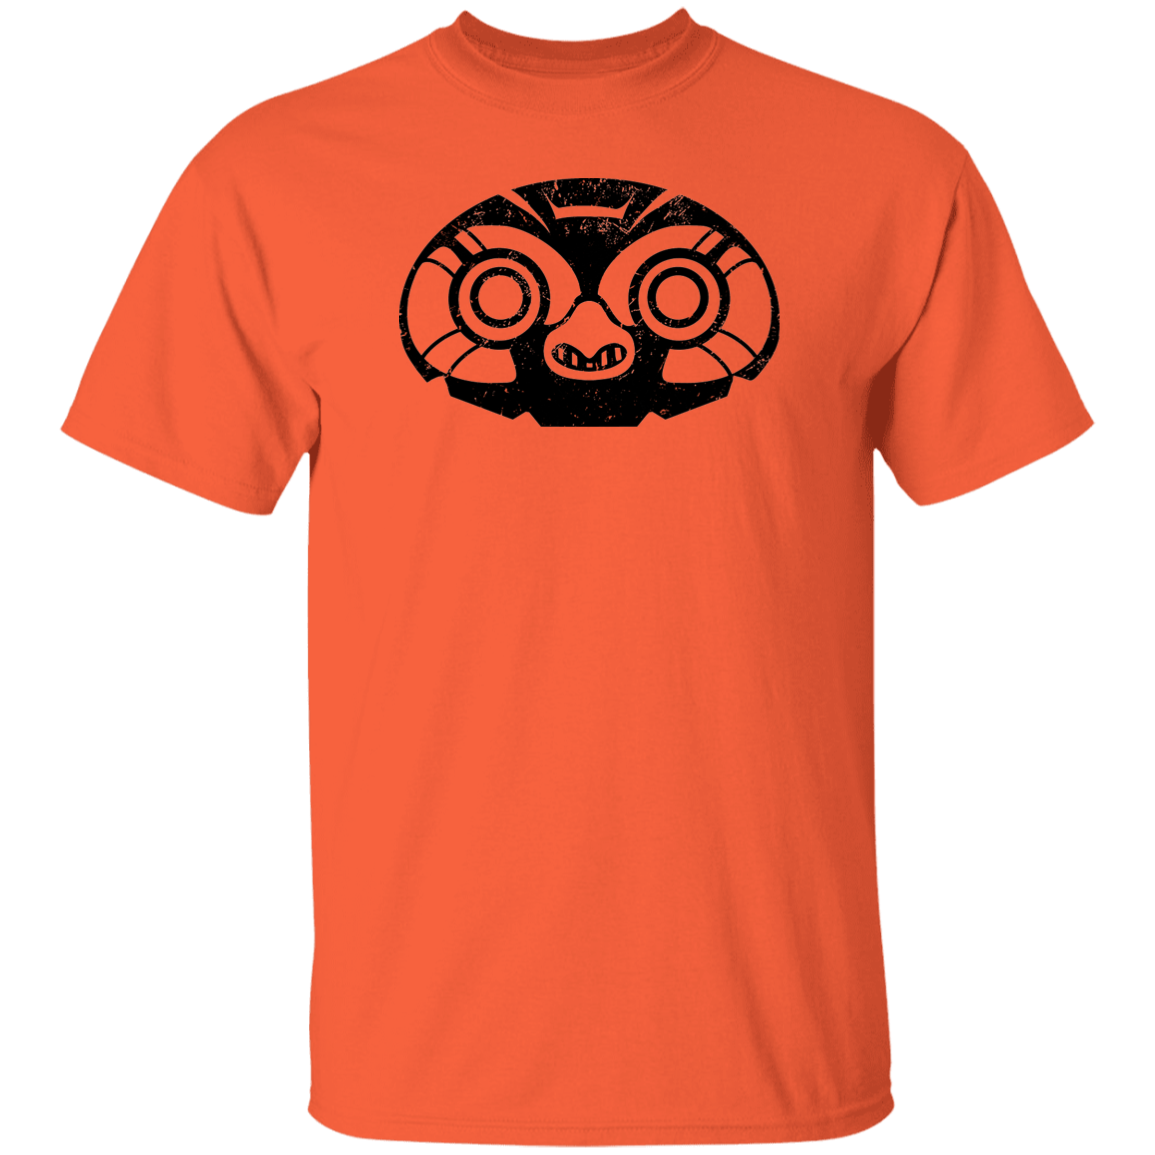 Black Distressed Emblem T-Shirt for Kids (Elf Owl/Peeps)